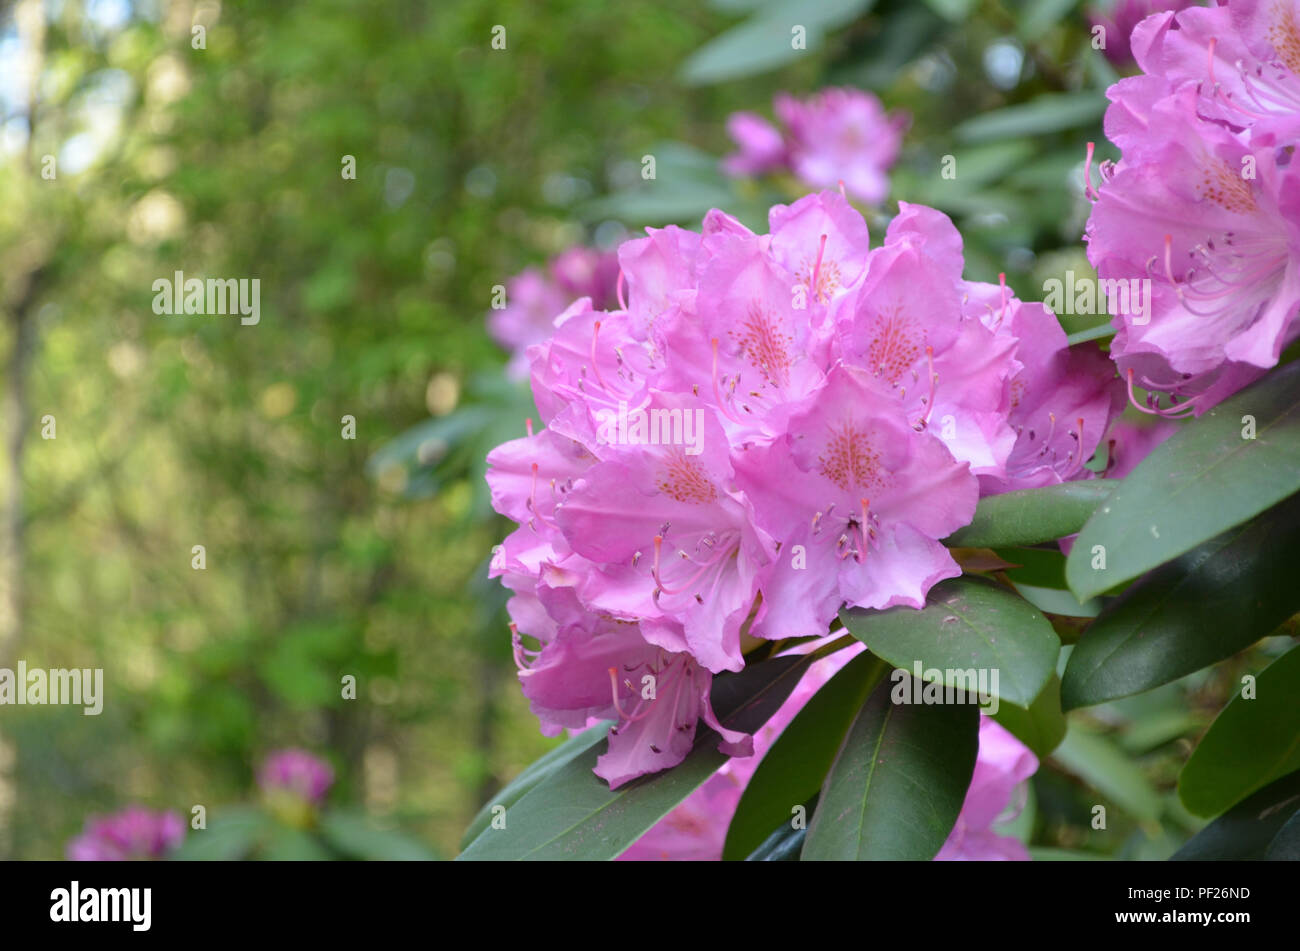 Pink flowering rhododendron bush with big pink flowers stock photo pink flowering rhododendron bush with big pink flowers mightylinksfo